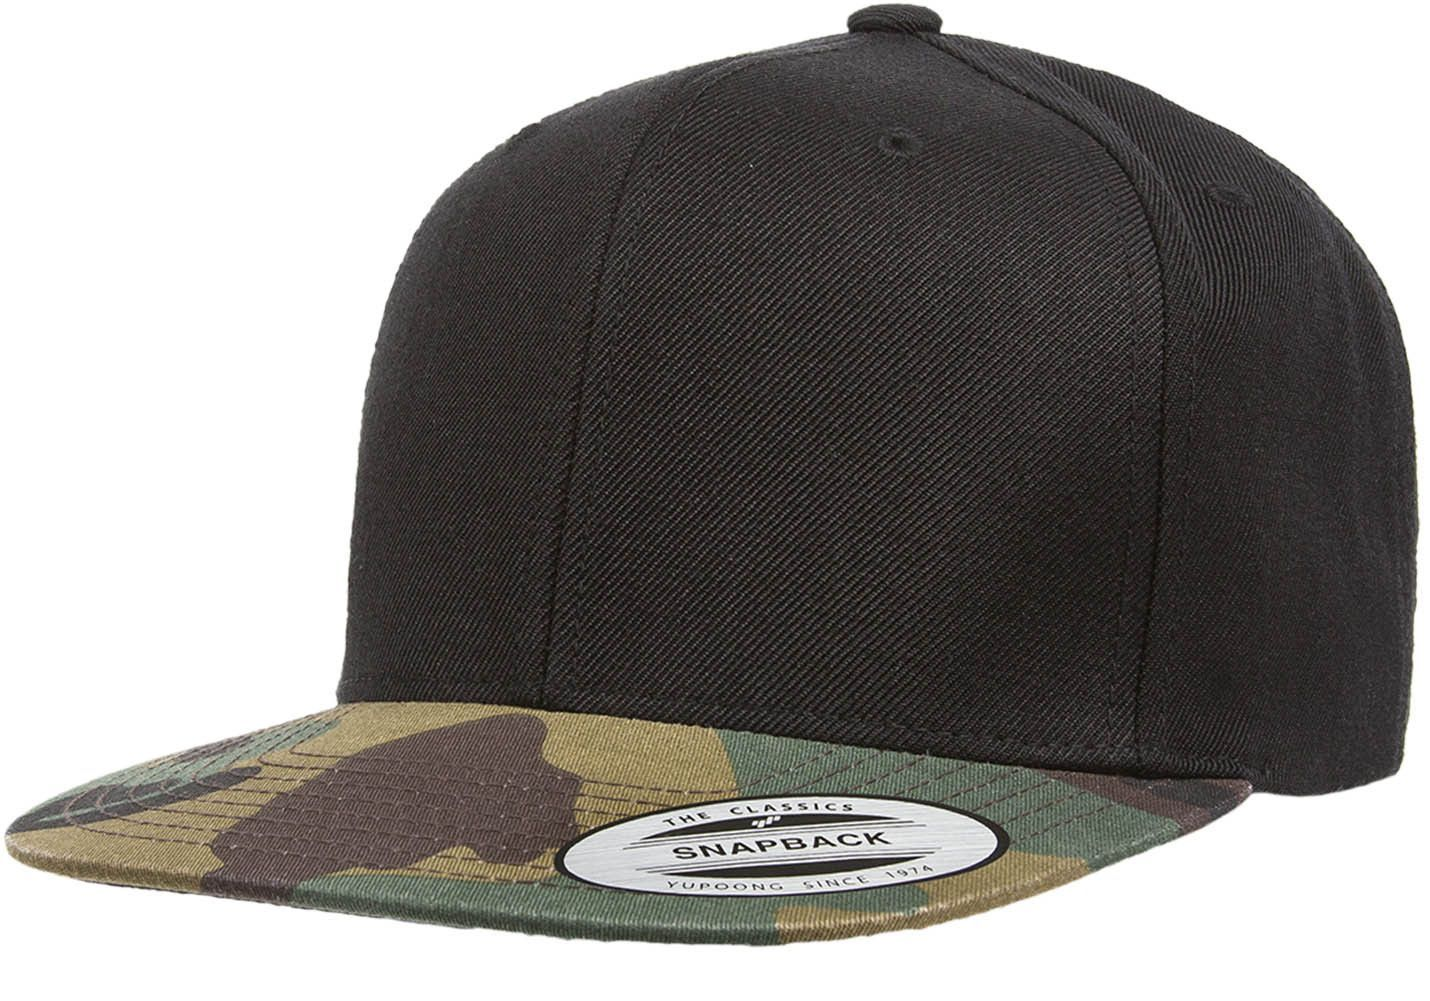 cc2cdeb4464 Flexfit Yupoong 6089TC 6 Panel Premium Classic Snapback Hat Wholesale  Black  Camo